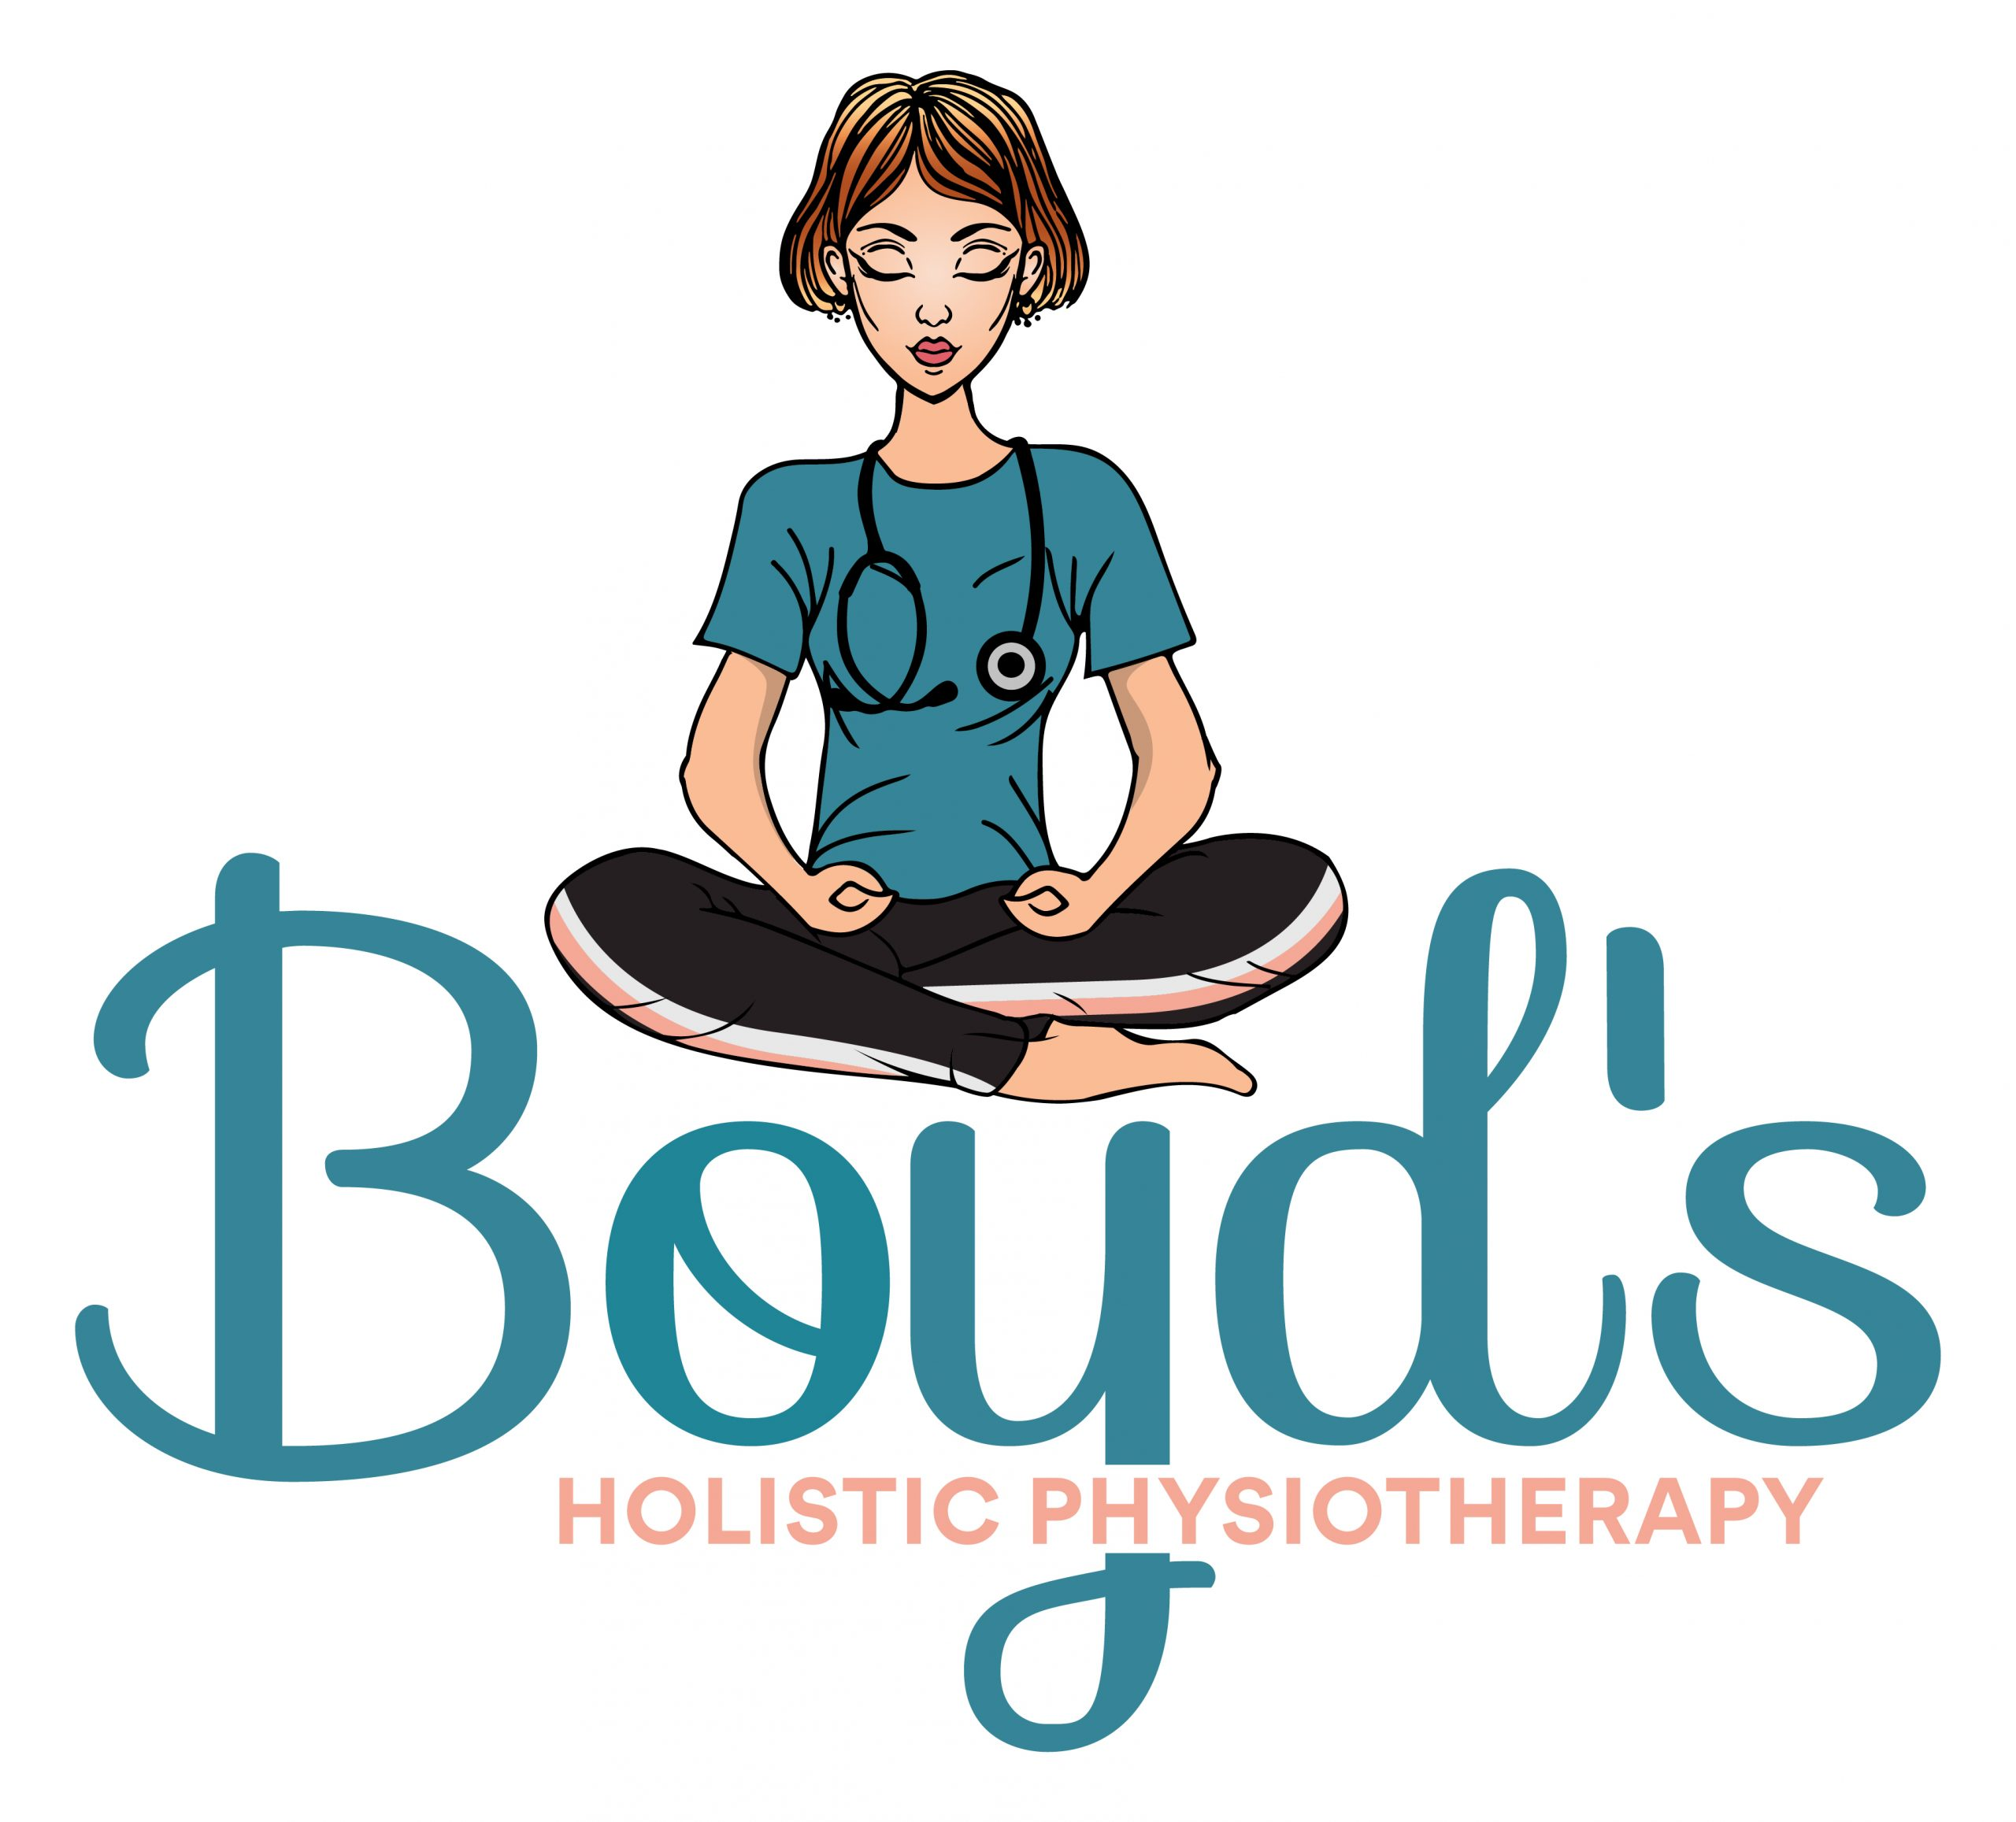 Boyd's Holistic Physiotherapy